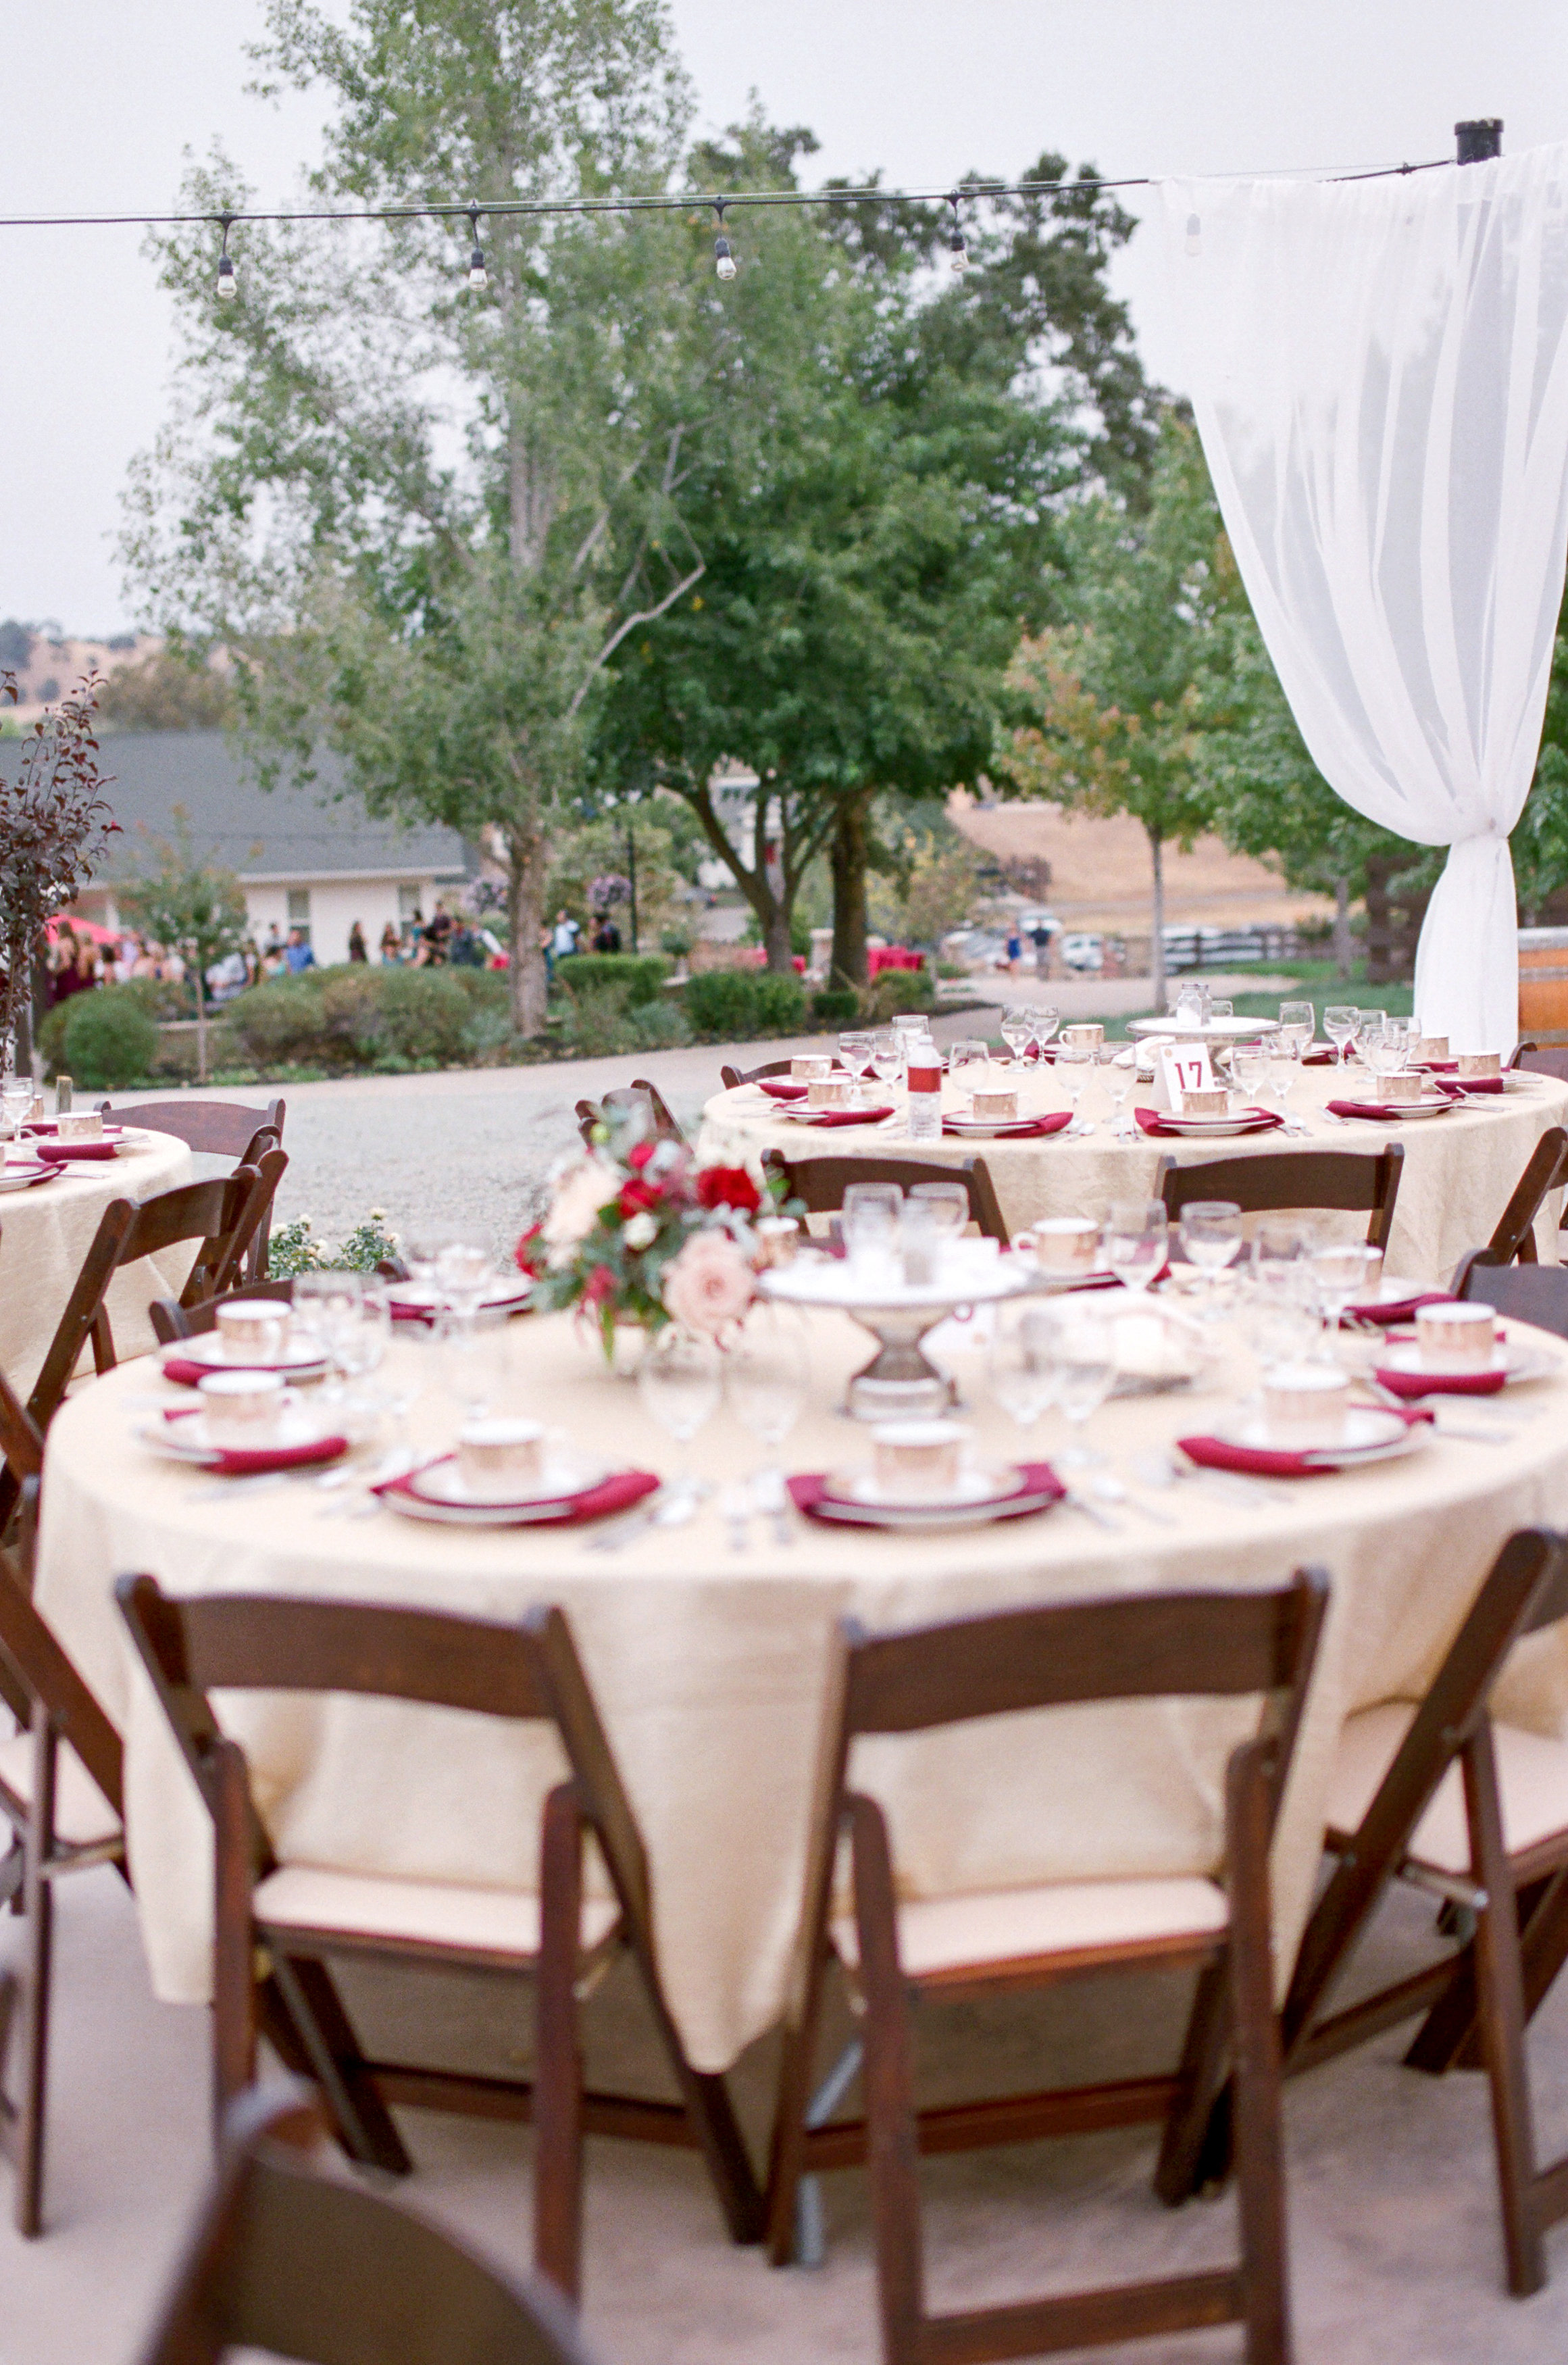 Amador_County_Wedding_Reception_Table_Arrangements_Draping_Lights_Rancho_Victoria_Vineyard_Northern_California.jpg